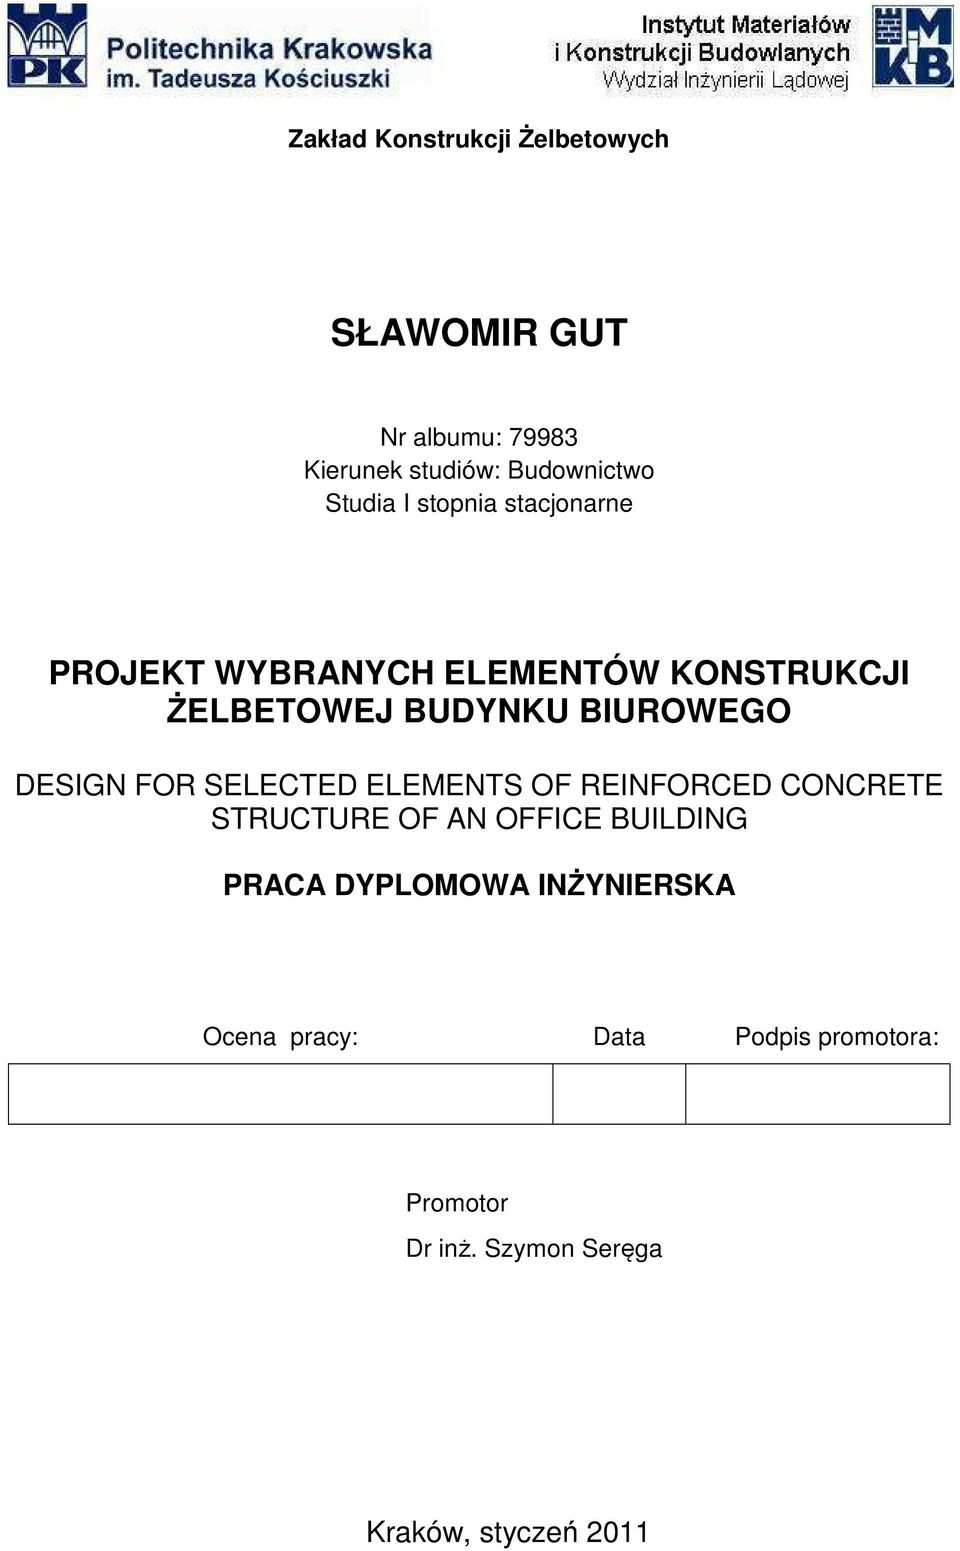 BIUROWEGO DESIGN FOR SELECTED ELEMENTS OF REINFORCED CONCRETE STRUCTURE OF AN OFFICE BUILDING